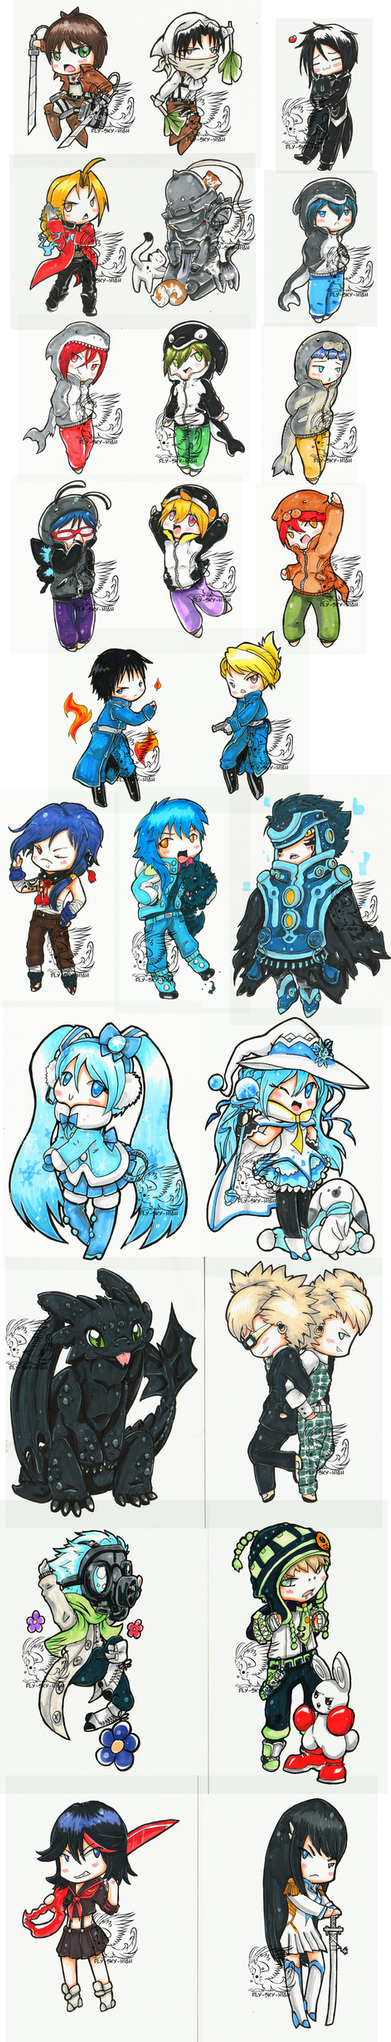 Chibi Chibicon 2015 compilation by Fly-Sky-High